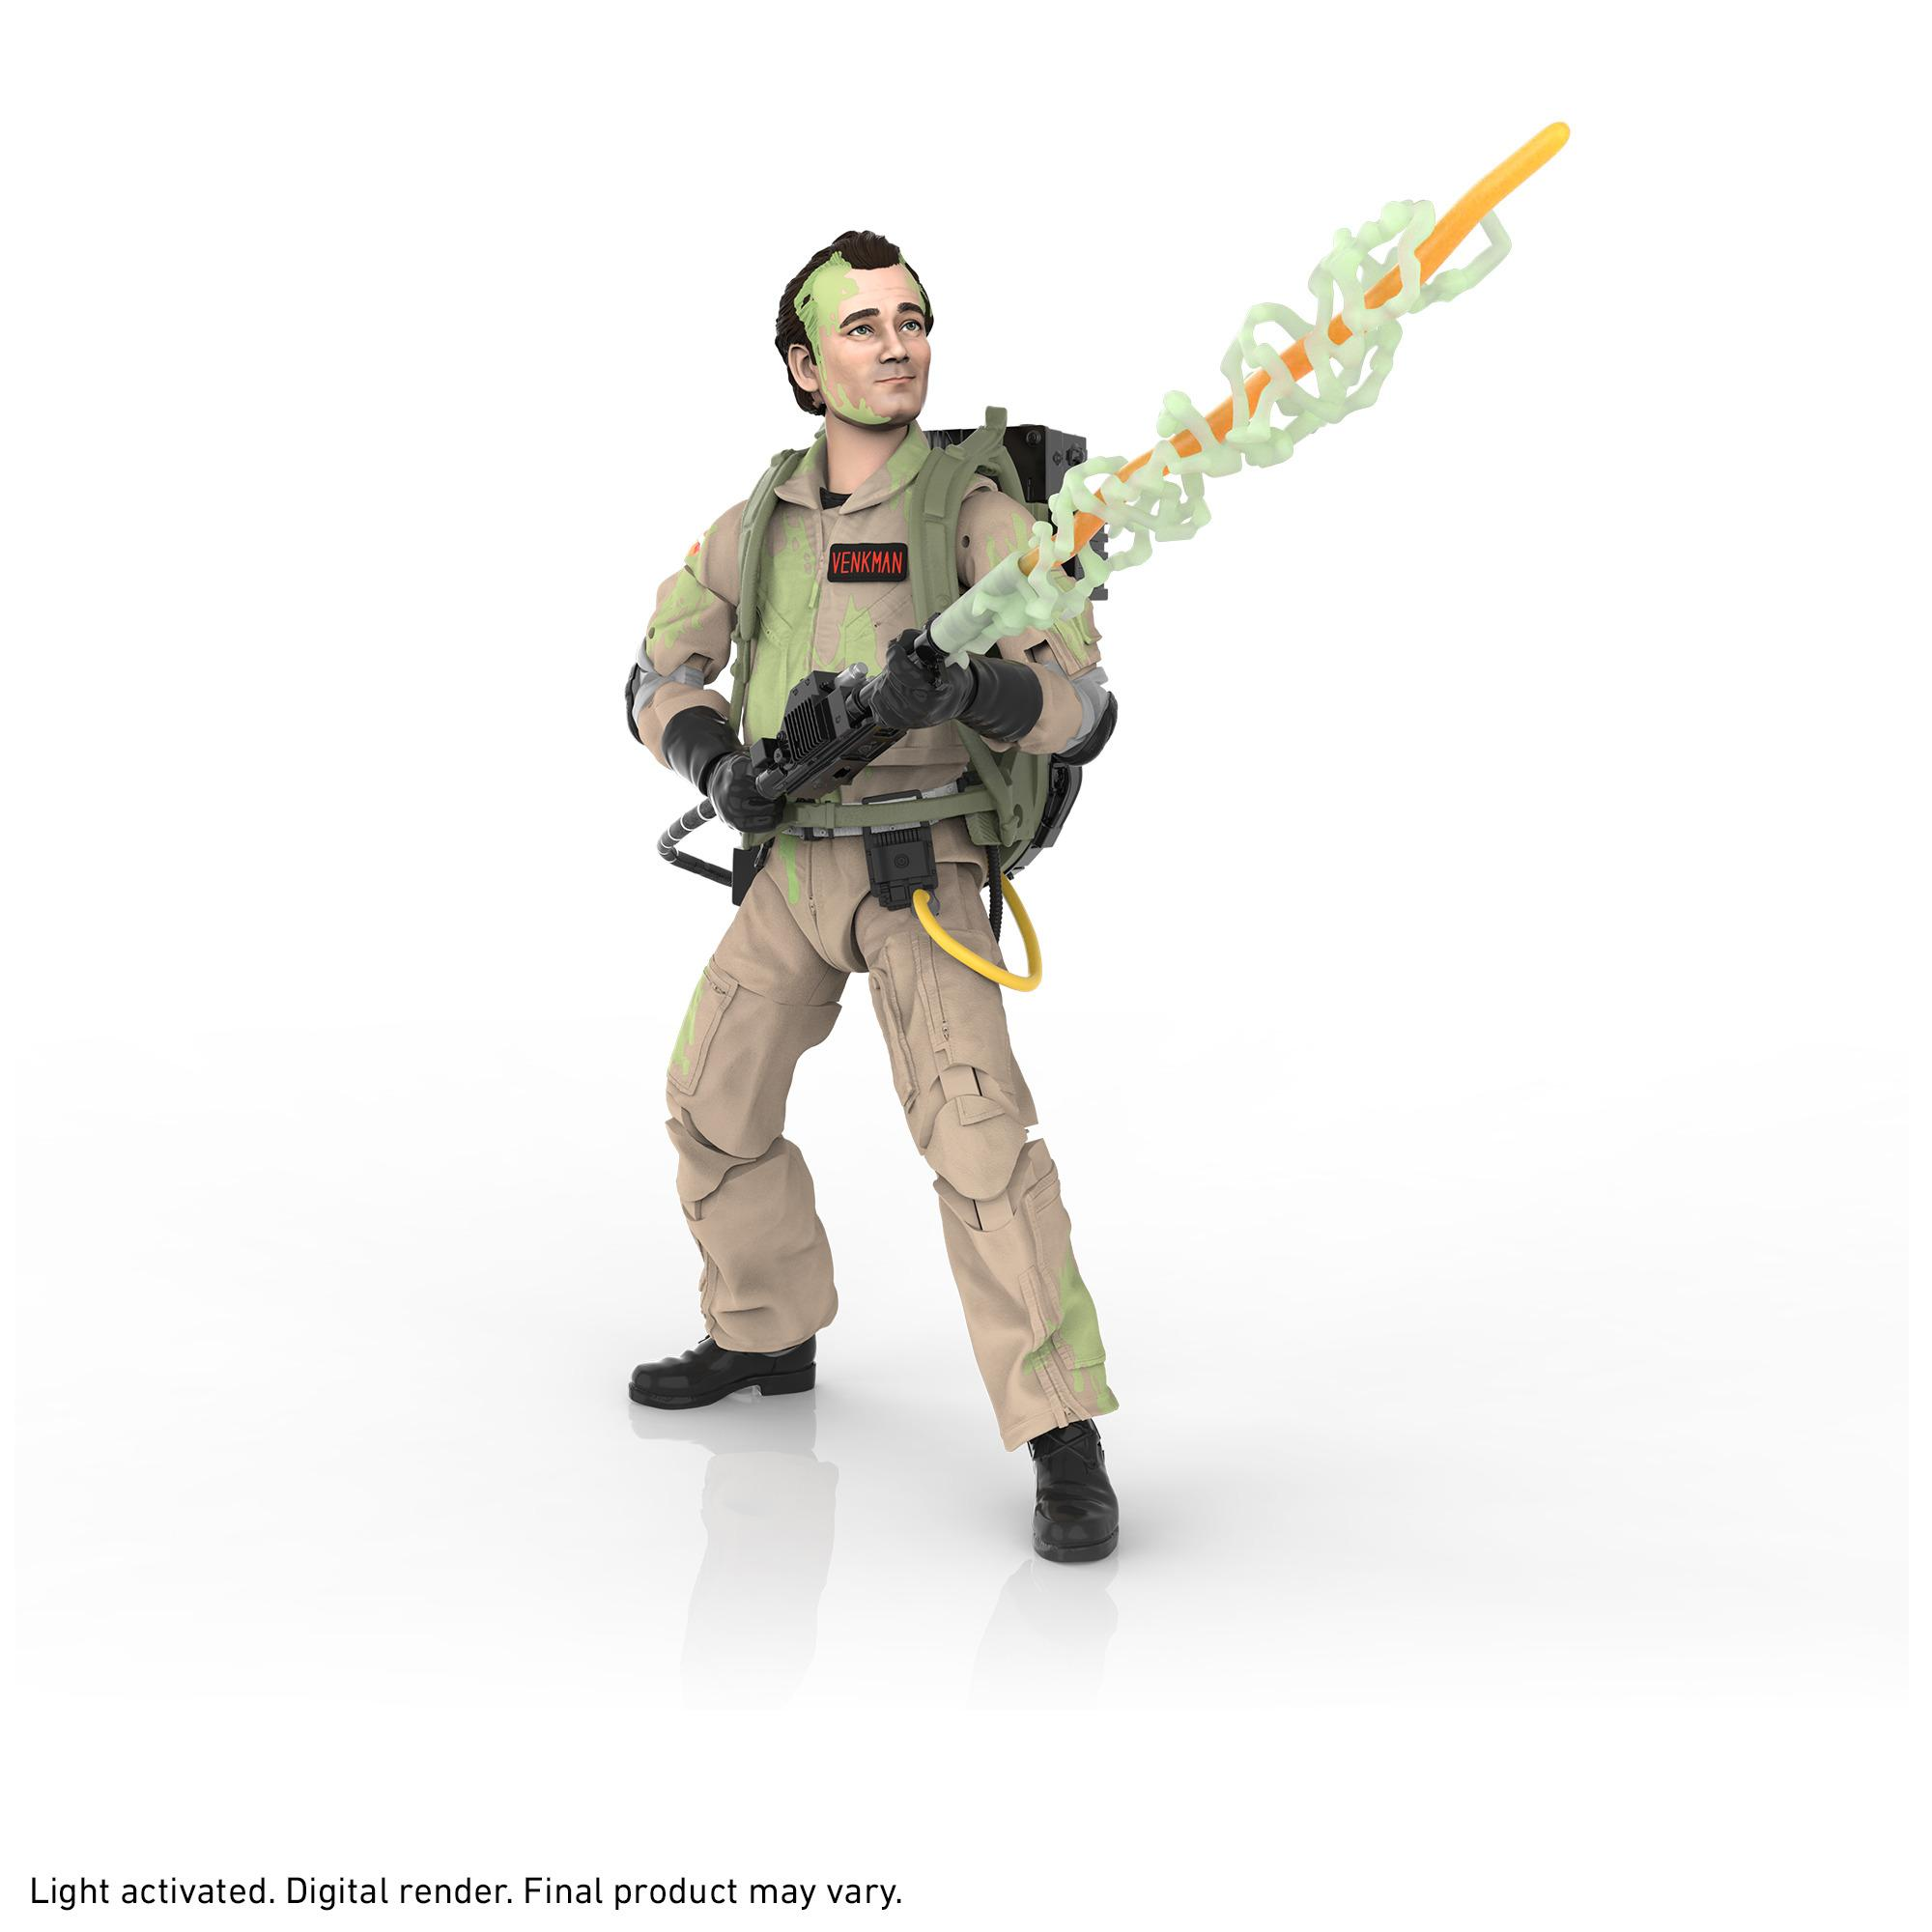 Ghostbusters Plasma Series Glow-in-the-Dark Peter Venkman Toy 6-Inch-Scale Collectible Classic 1984 Ghostbusters Figure